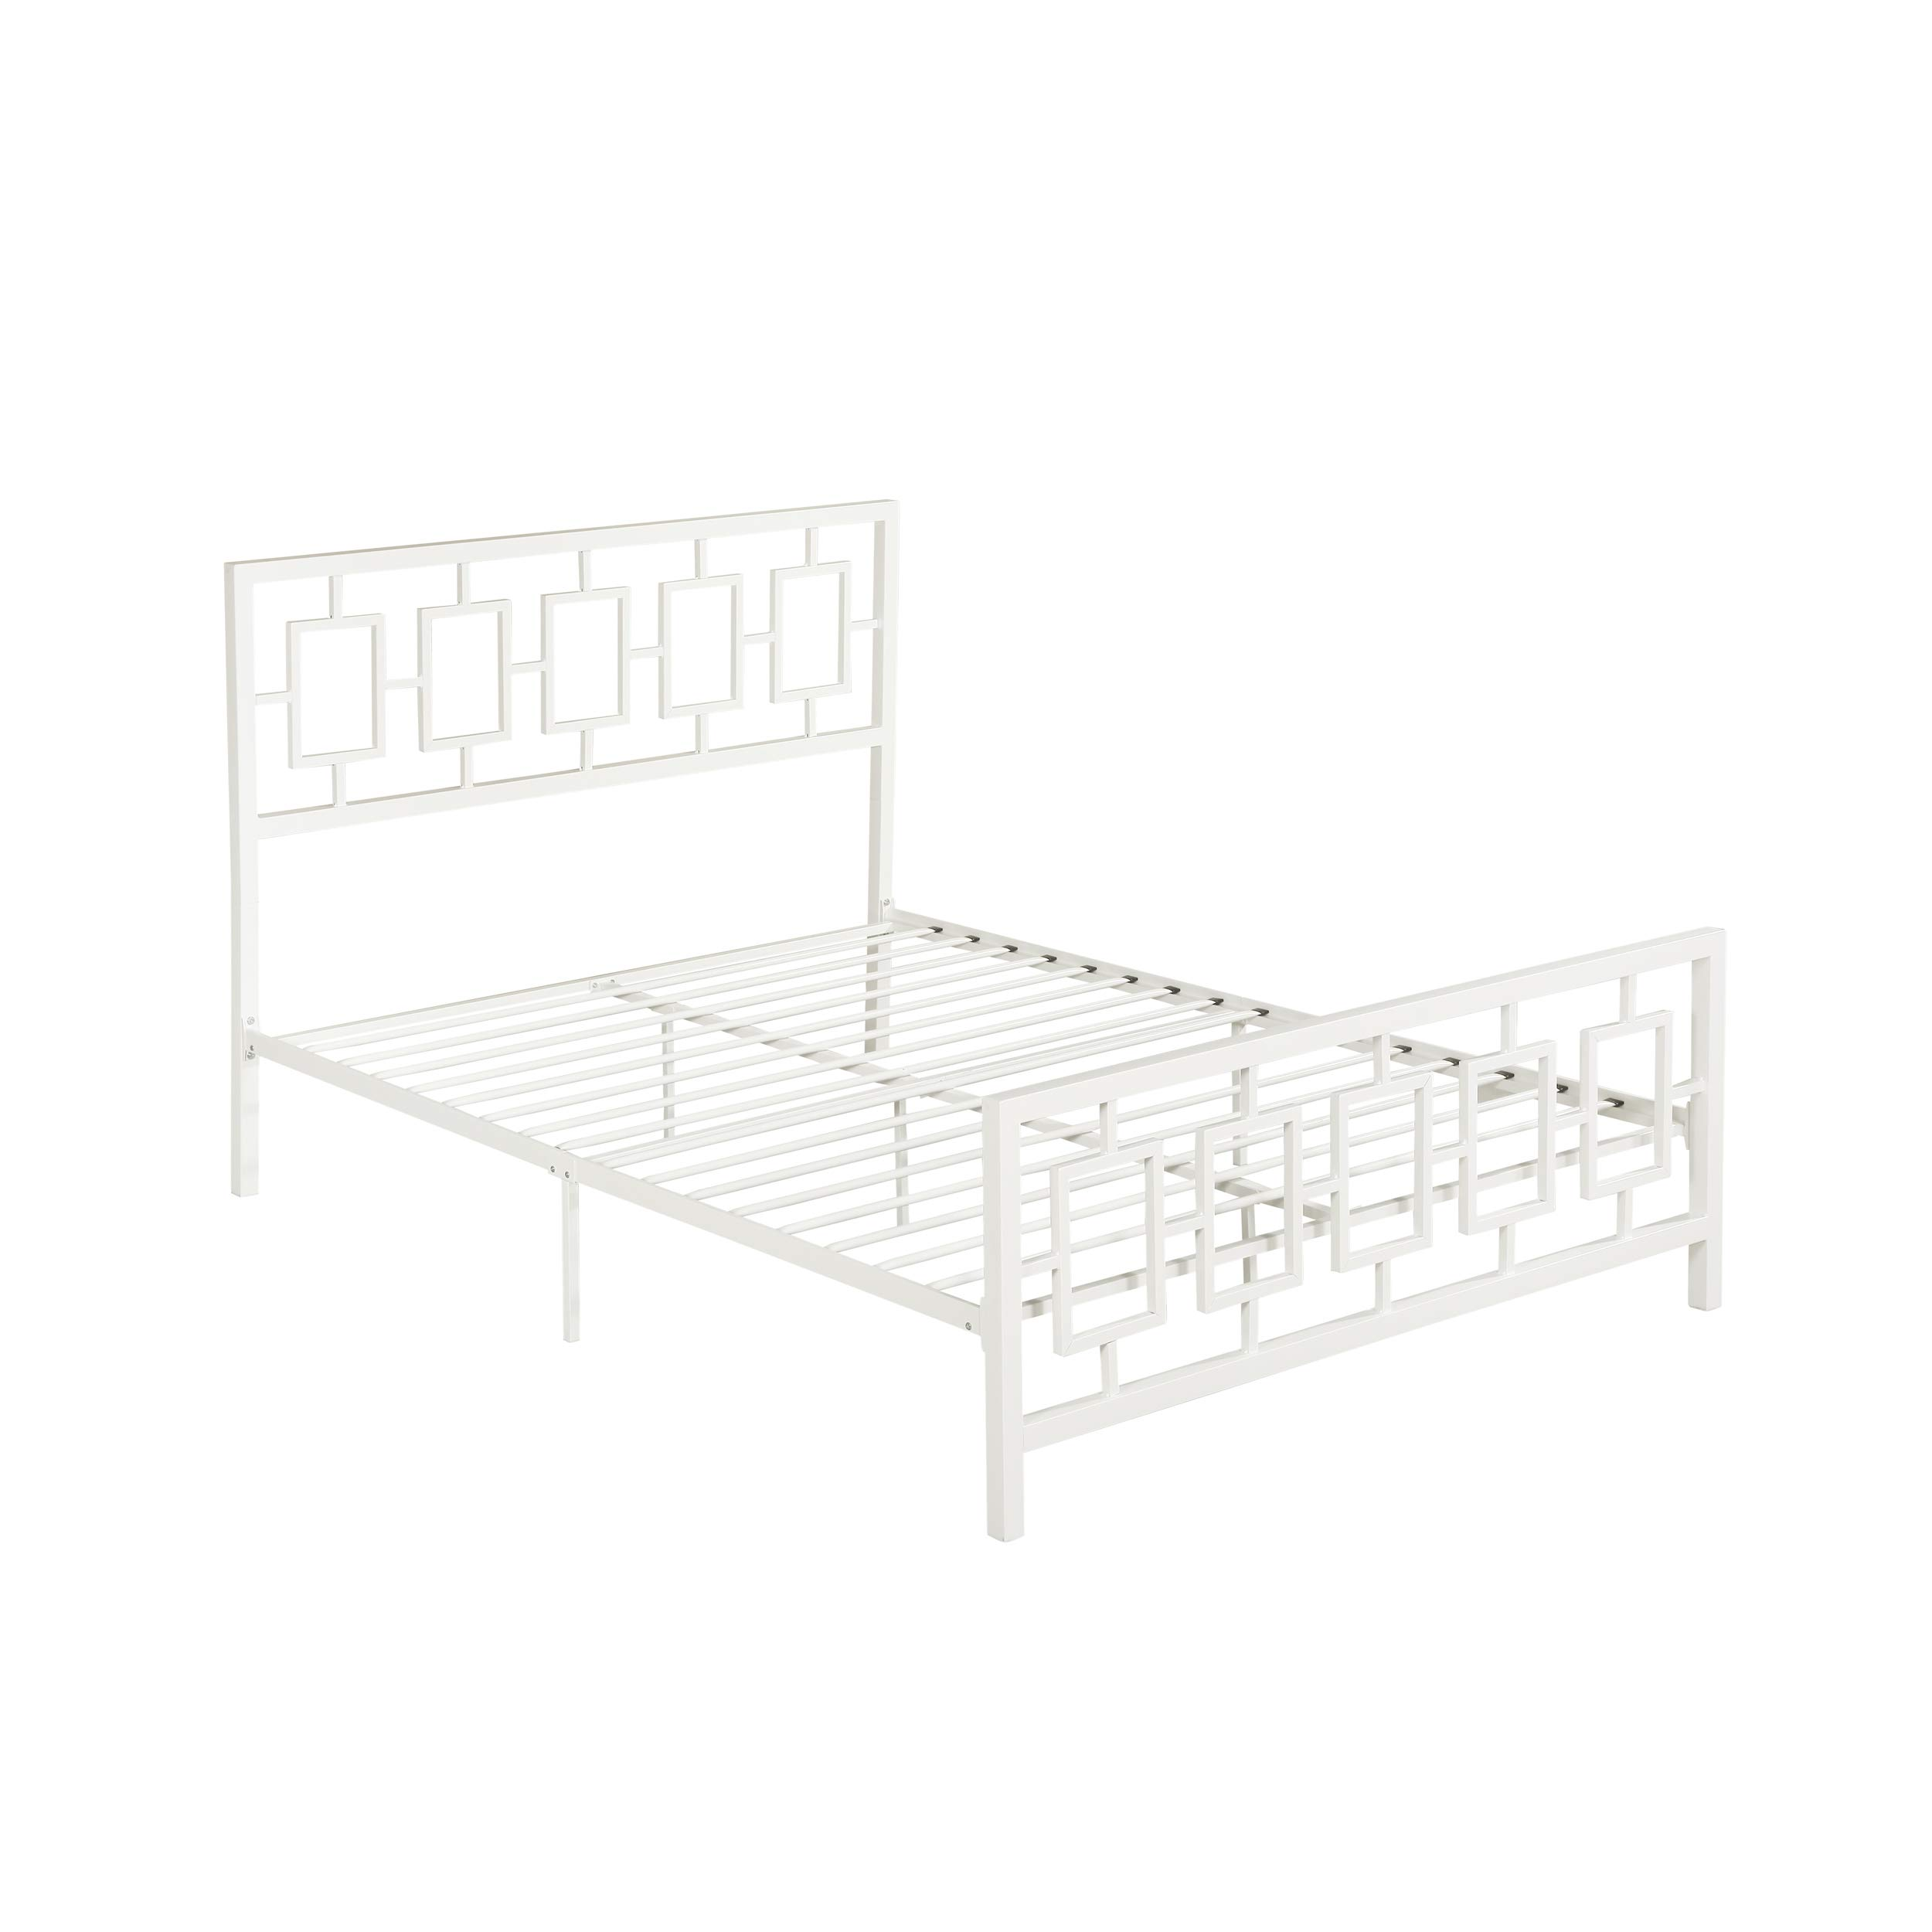 Christopher Knight Home Dawn Queen-Size Geometric Platform Bed Frame, Iron, Modern, Contemporary, Low-Profile, White by Christopher Knight Home